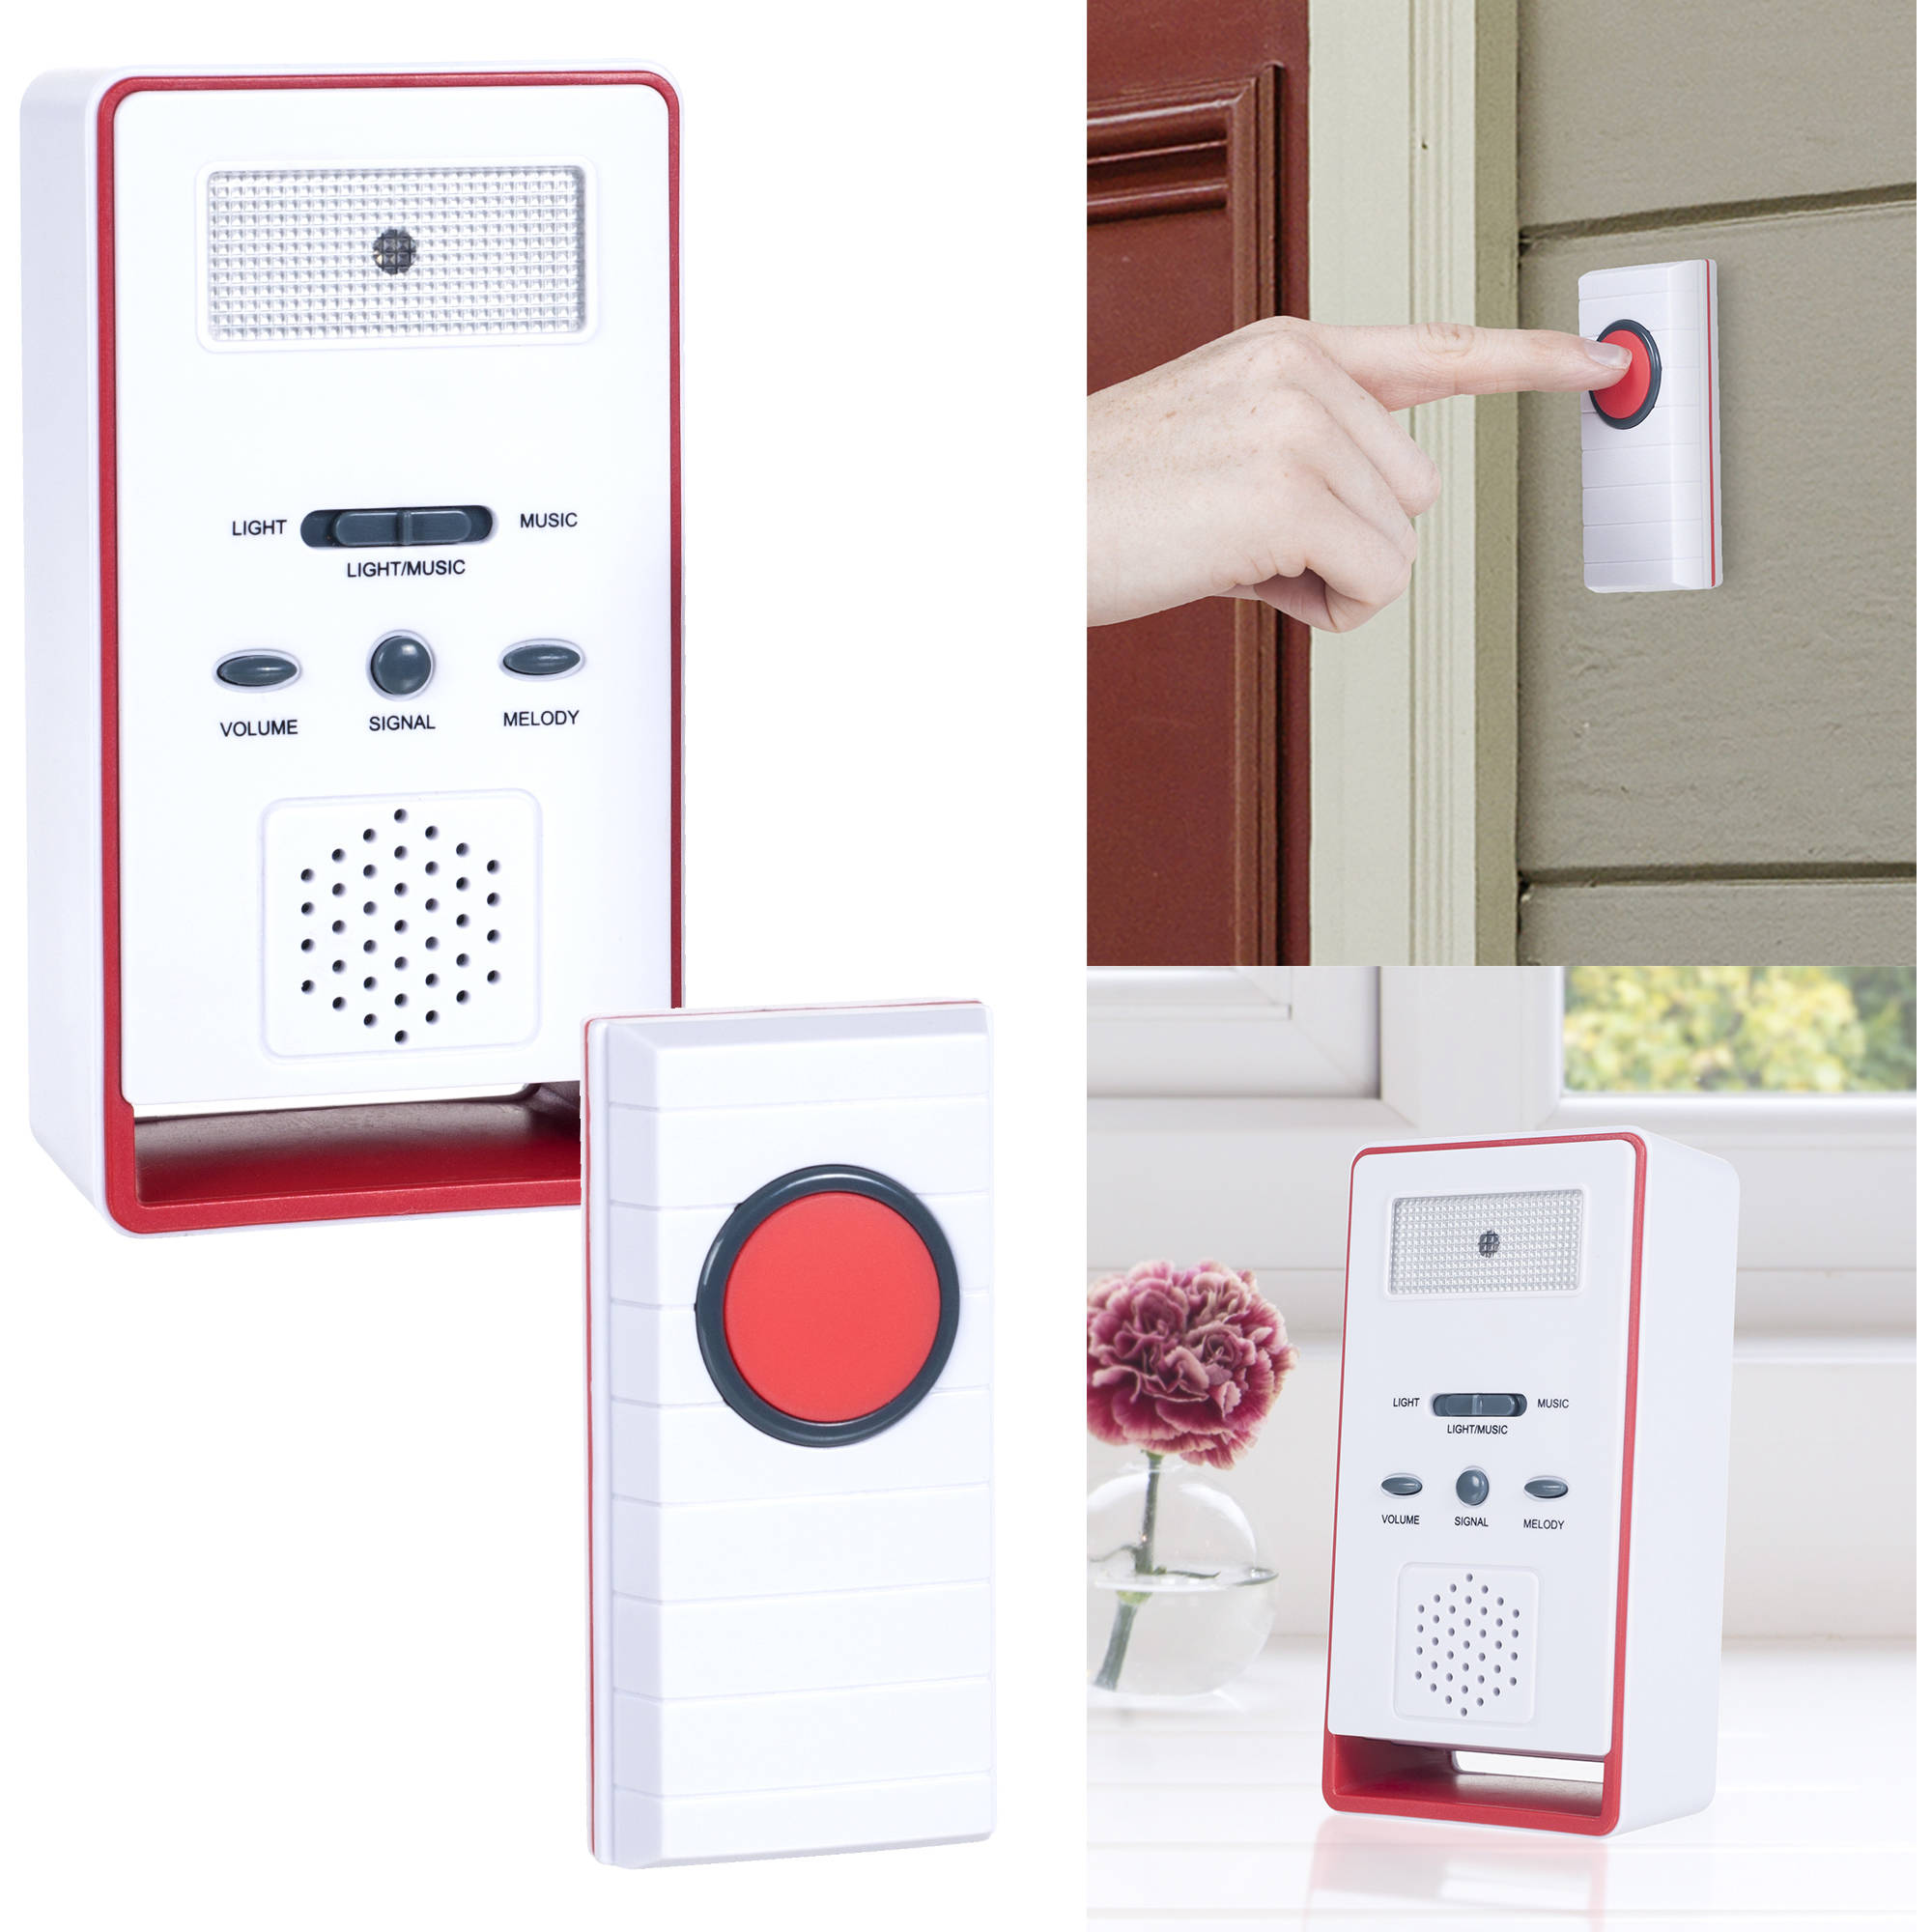 Stalwart Wireless Remote Doorbell Chime and Push Button